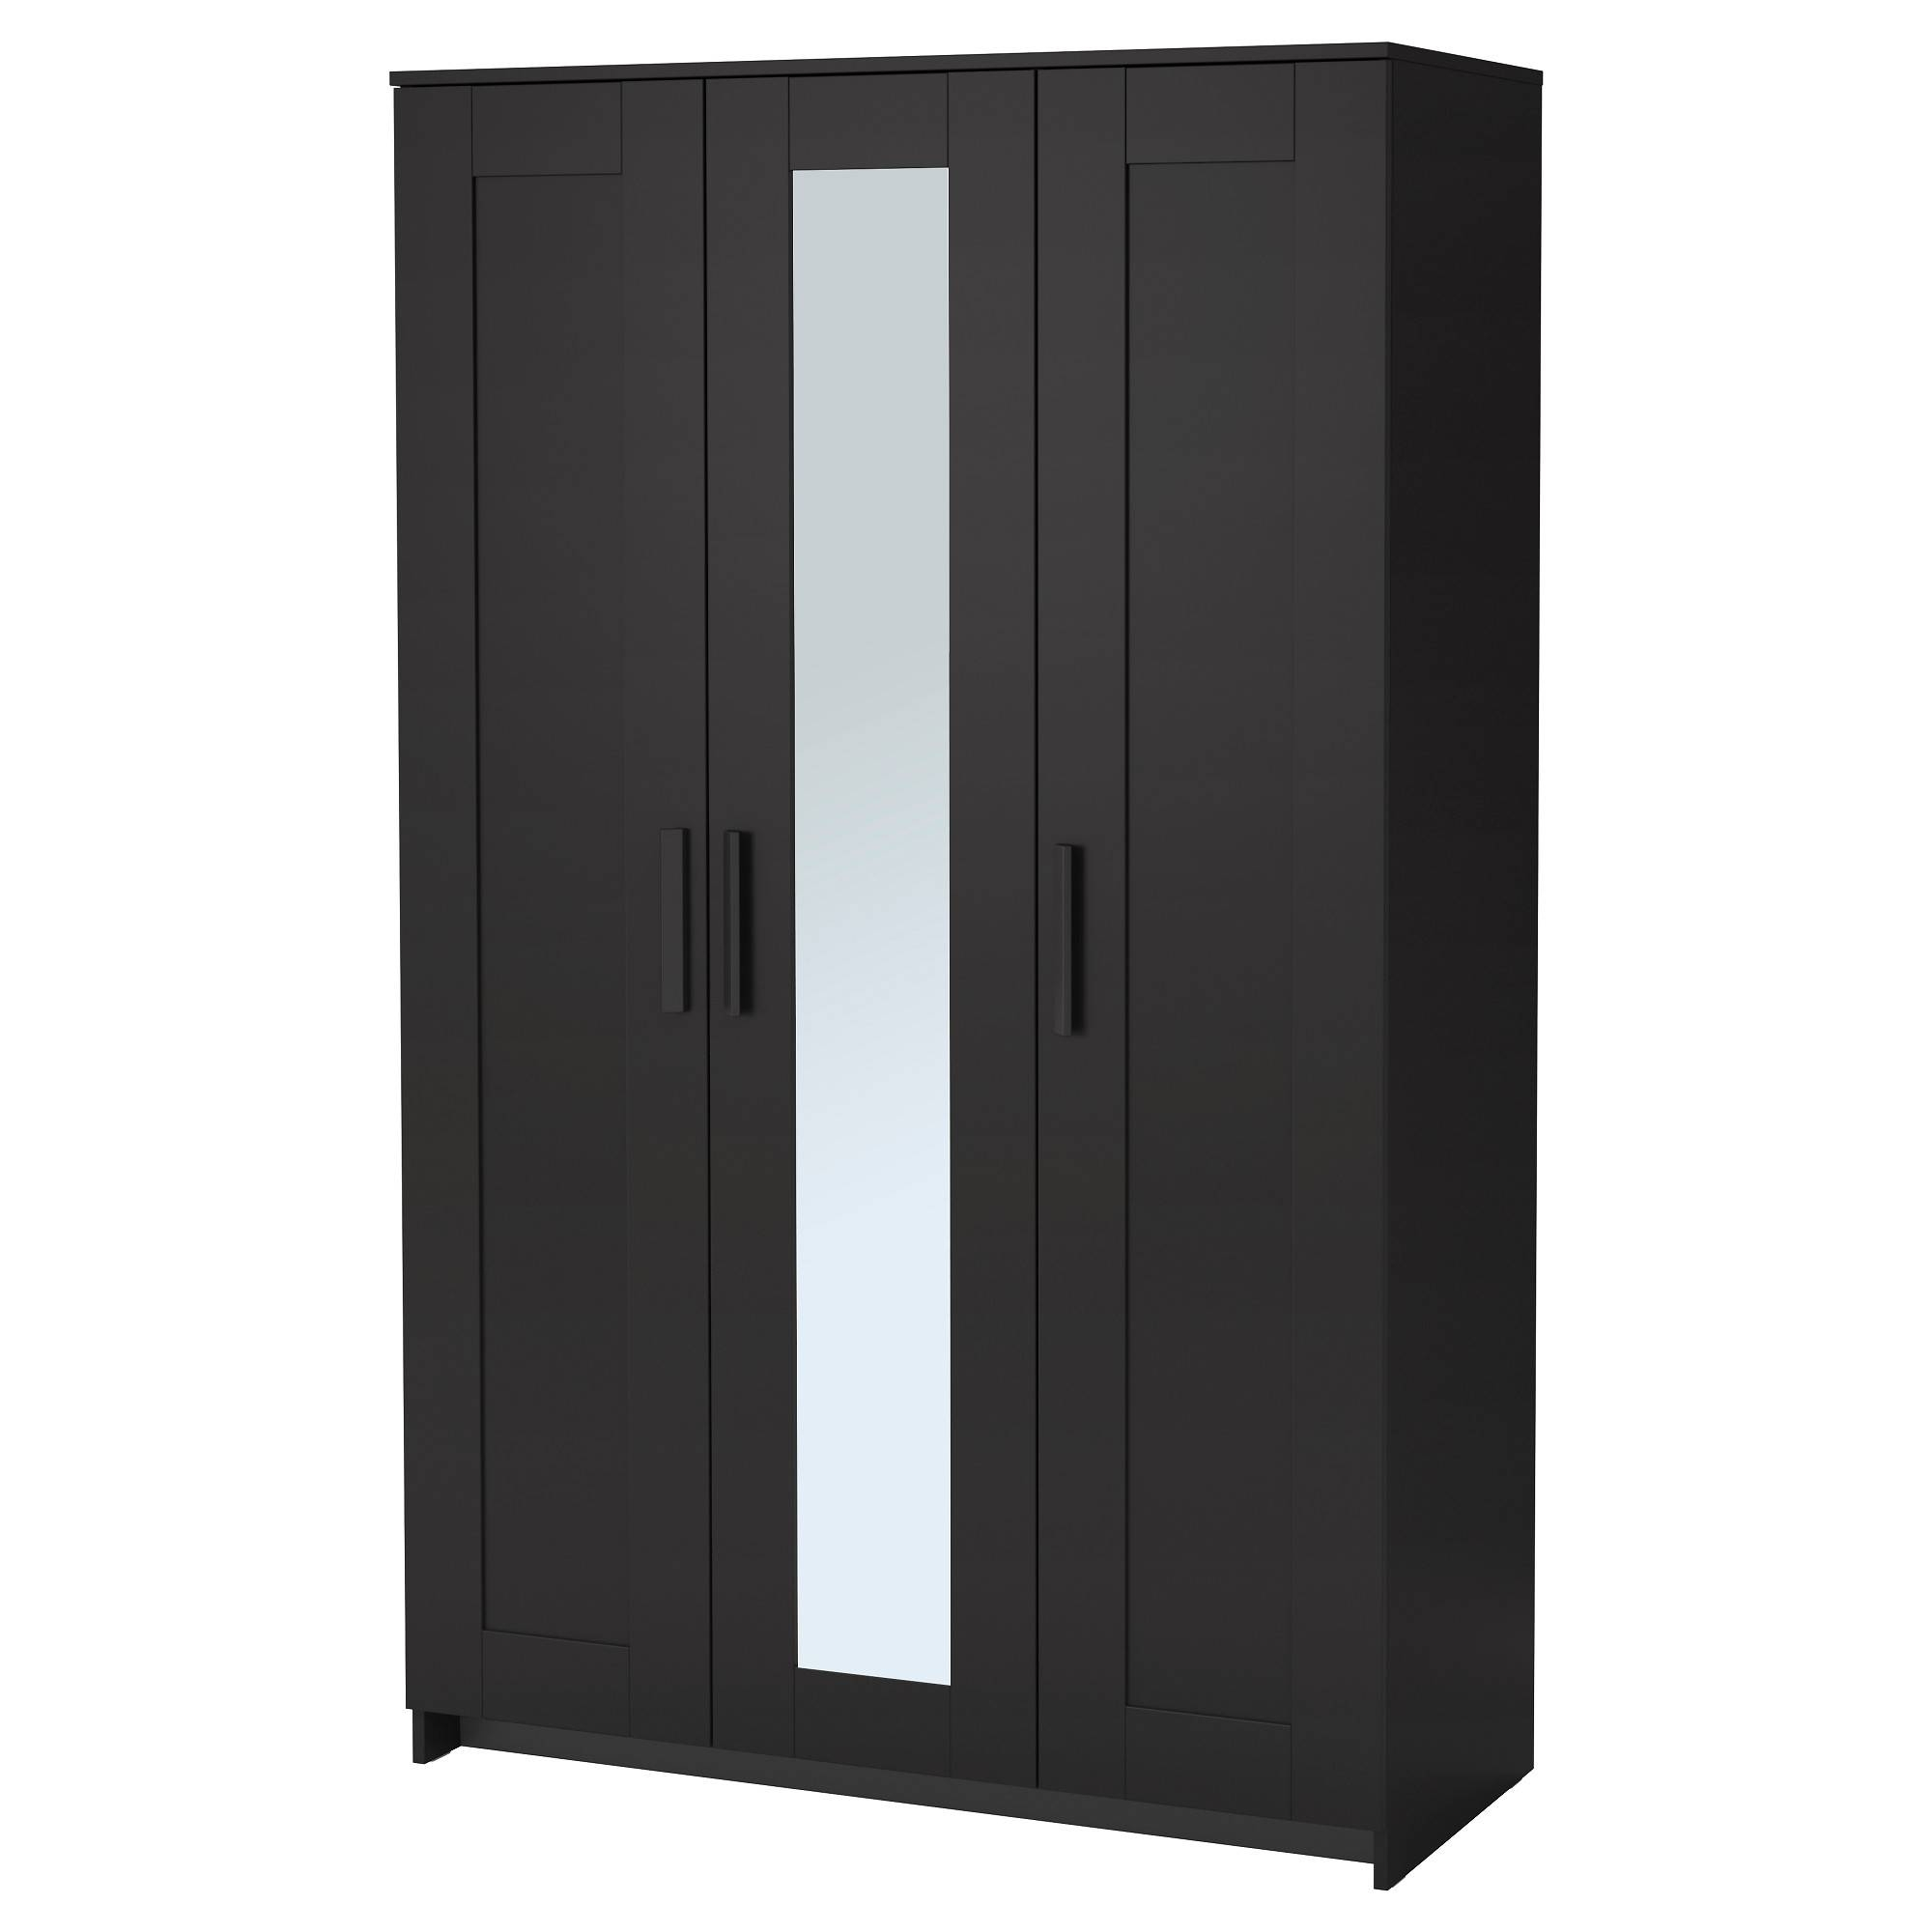 Brimnes Wardrobe With 3 Doors - White - Ikea regarding 3 Doors Wardrobes With Mirror (Image 3 of 15)